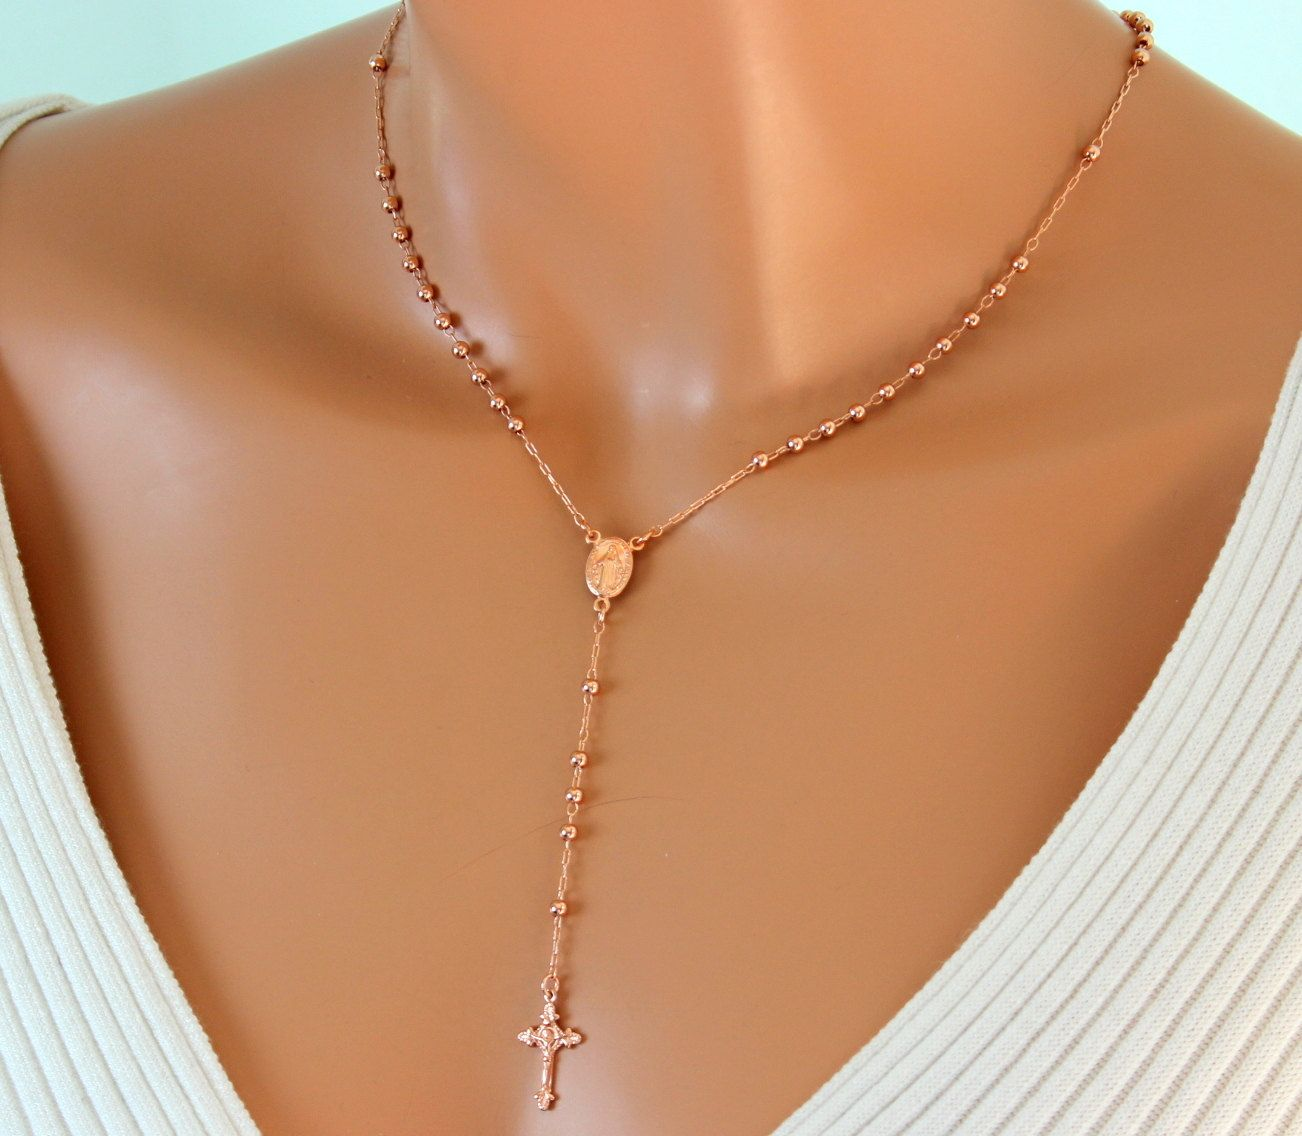 BEST SELLER Rose Gold Rosary Necklace Women, Cross Necklaces Catholic Rosary Jewelry Miraculous Confirmation Gift Yoland Foster #rosaryjewelry